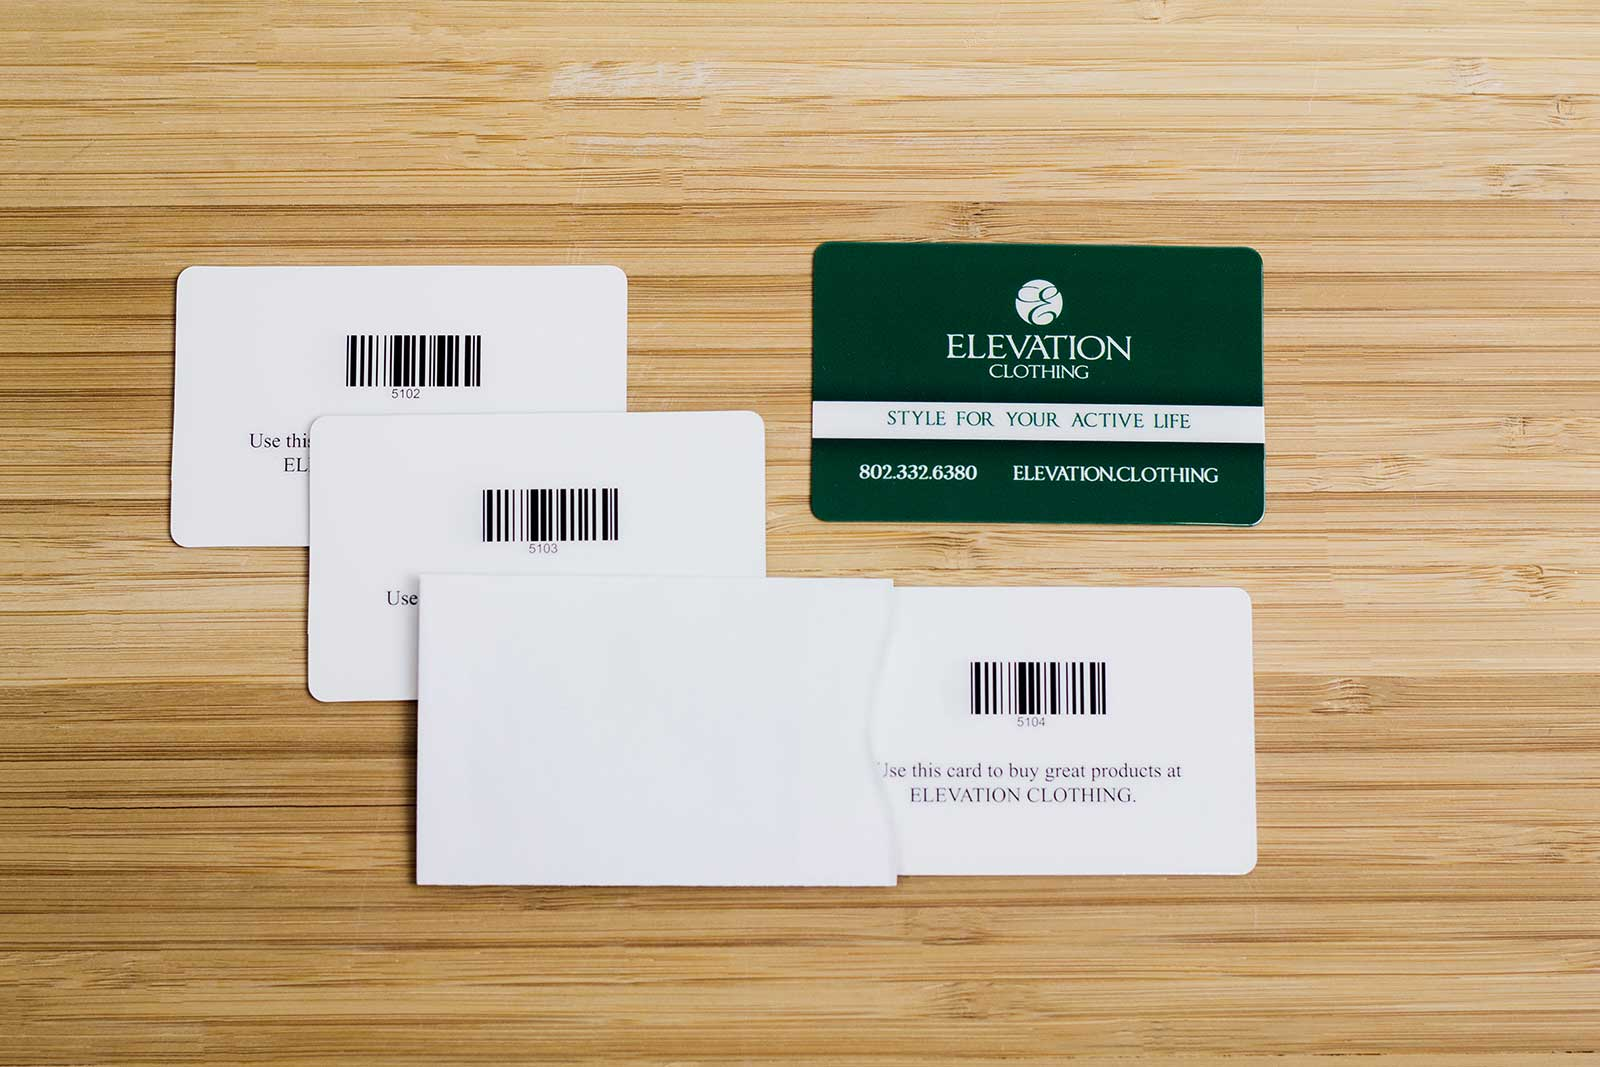 Free Gift Card Program Consultation from Plastic Printers, Inc.